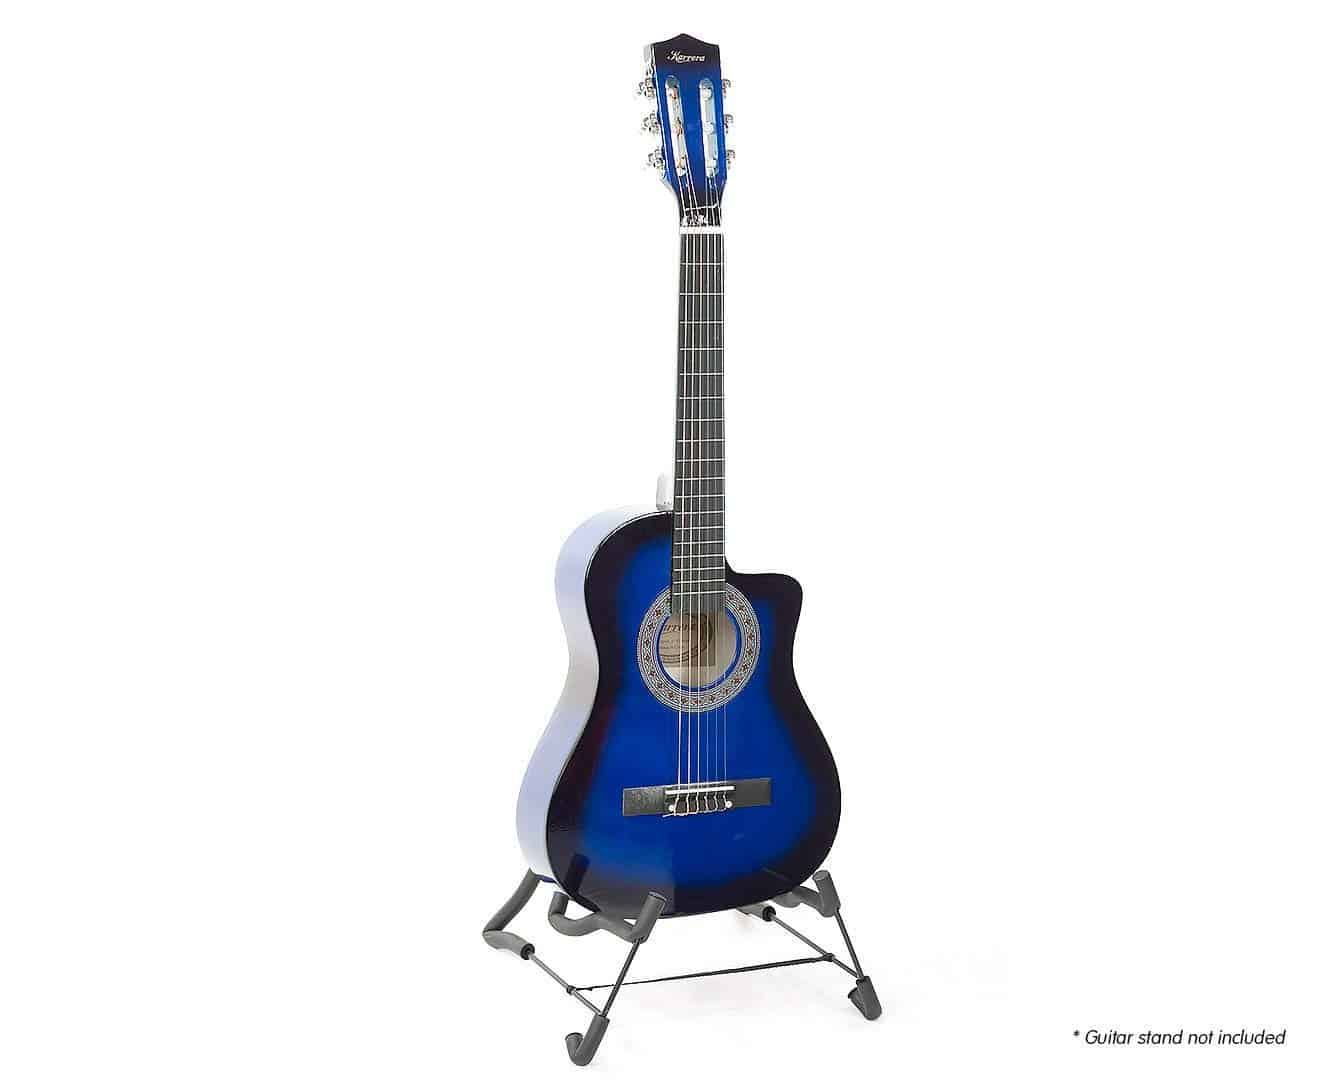 00ed0a23961 Australian Guide To Finding The Best Acoustic Guitar 2019 - Simpler ...